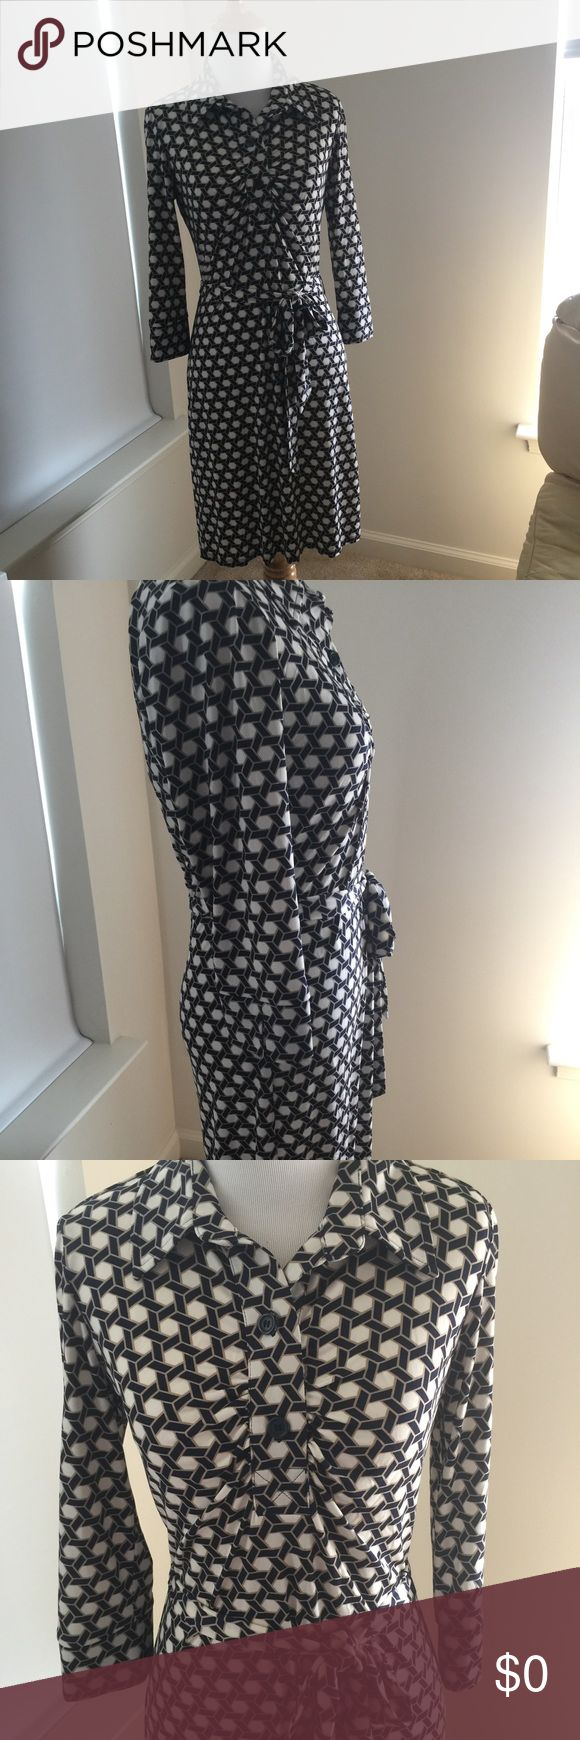 Laundry Shelli Segal shirt dress. NWOT Dress is very flattering and comfortable. Worn once. Very soft fabric and perfect for al seasons. Laundry by Shelli Segal Dresses